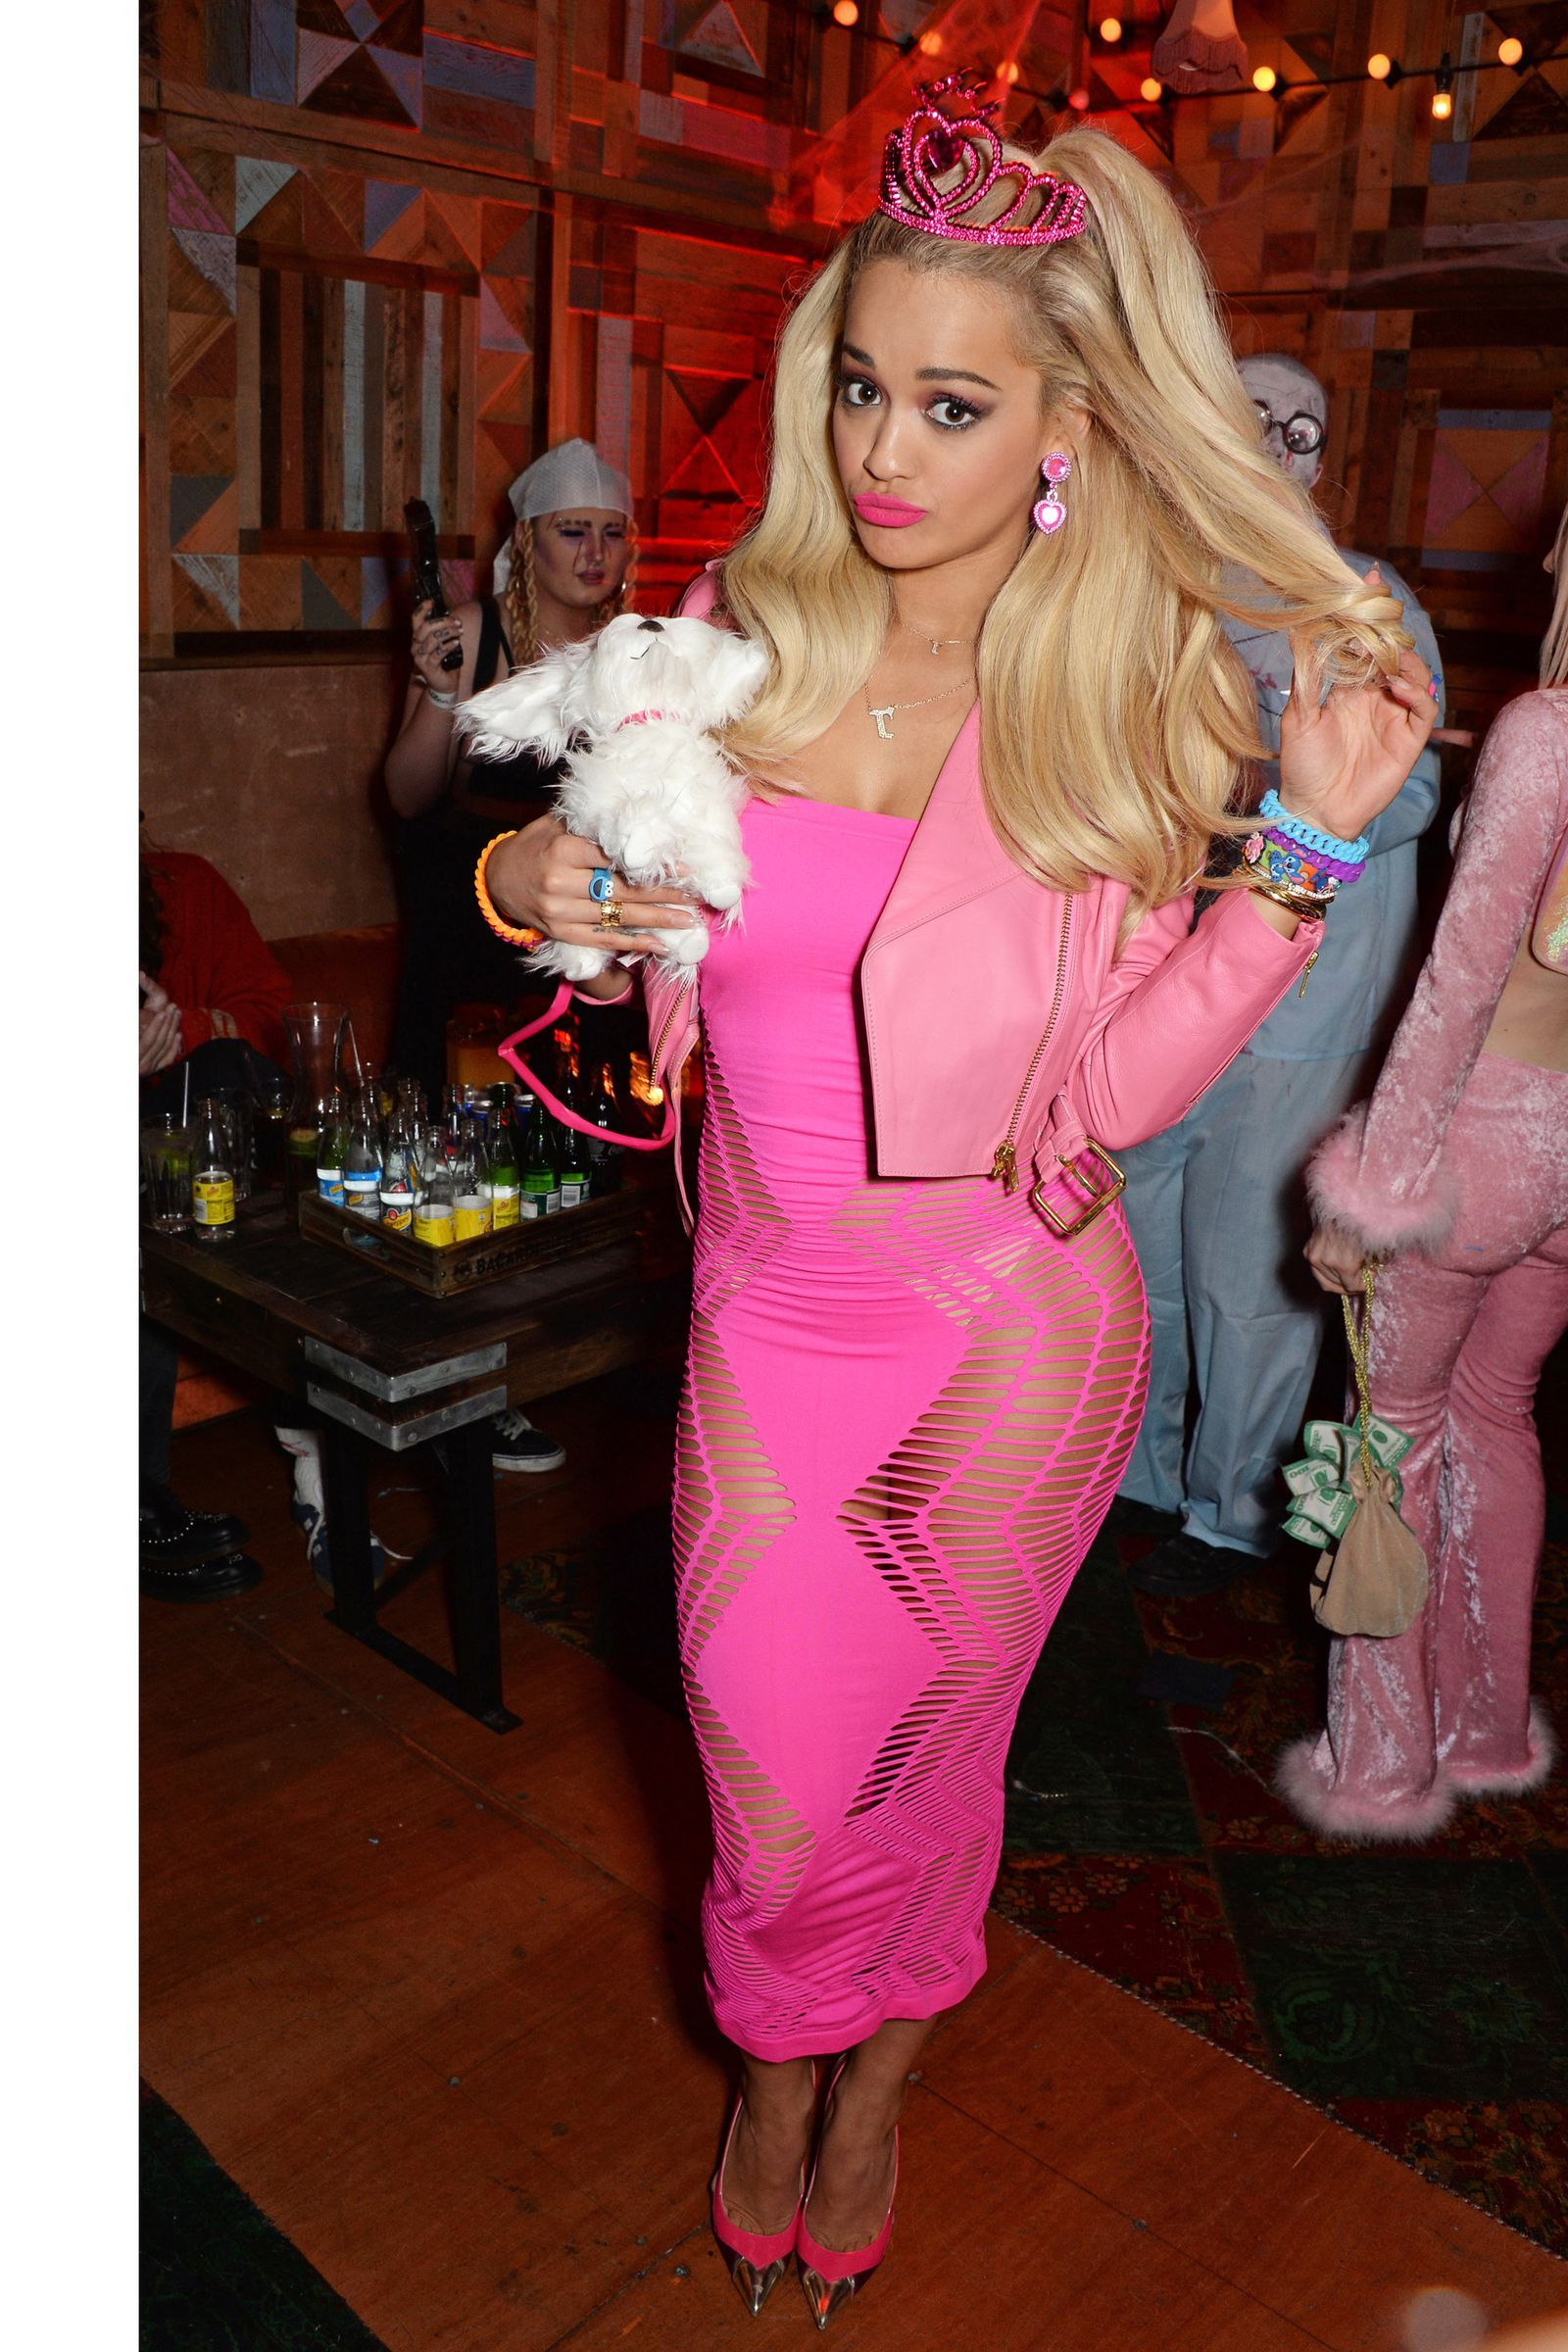 Barbie Halloween Costume Ideas.The Most Epic Celebrity Halloween Costume Ideas Halloween